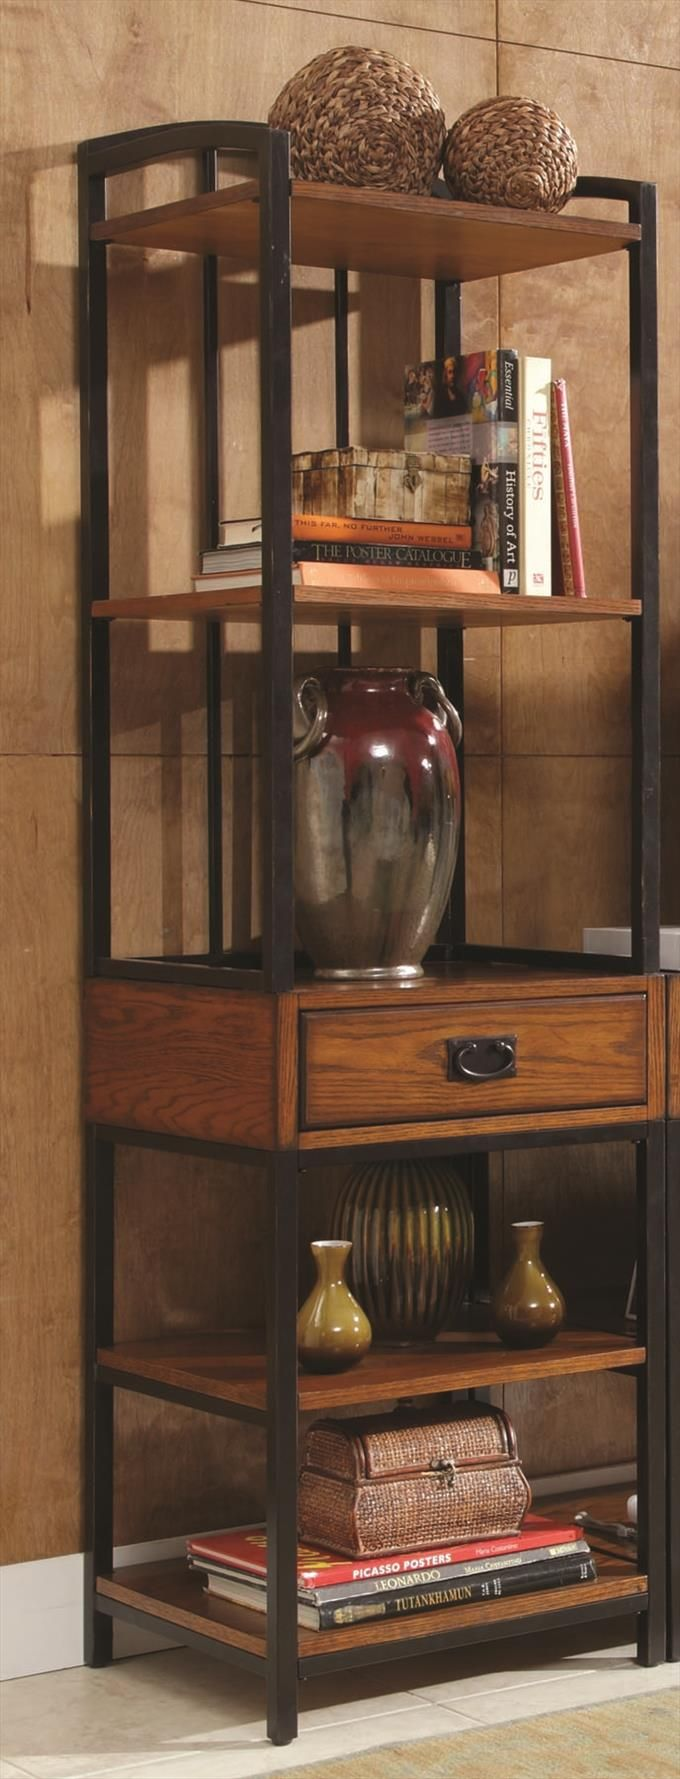 image mission home styles furniture. Home Styles Modern Craftsman Gaming Tower, Distressed Oak Finish Image Mission Furniture